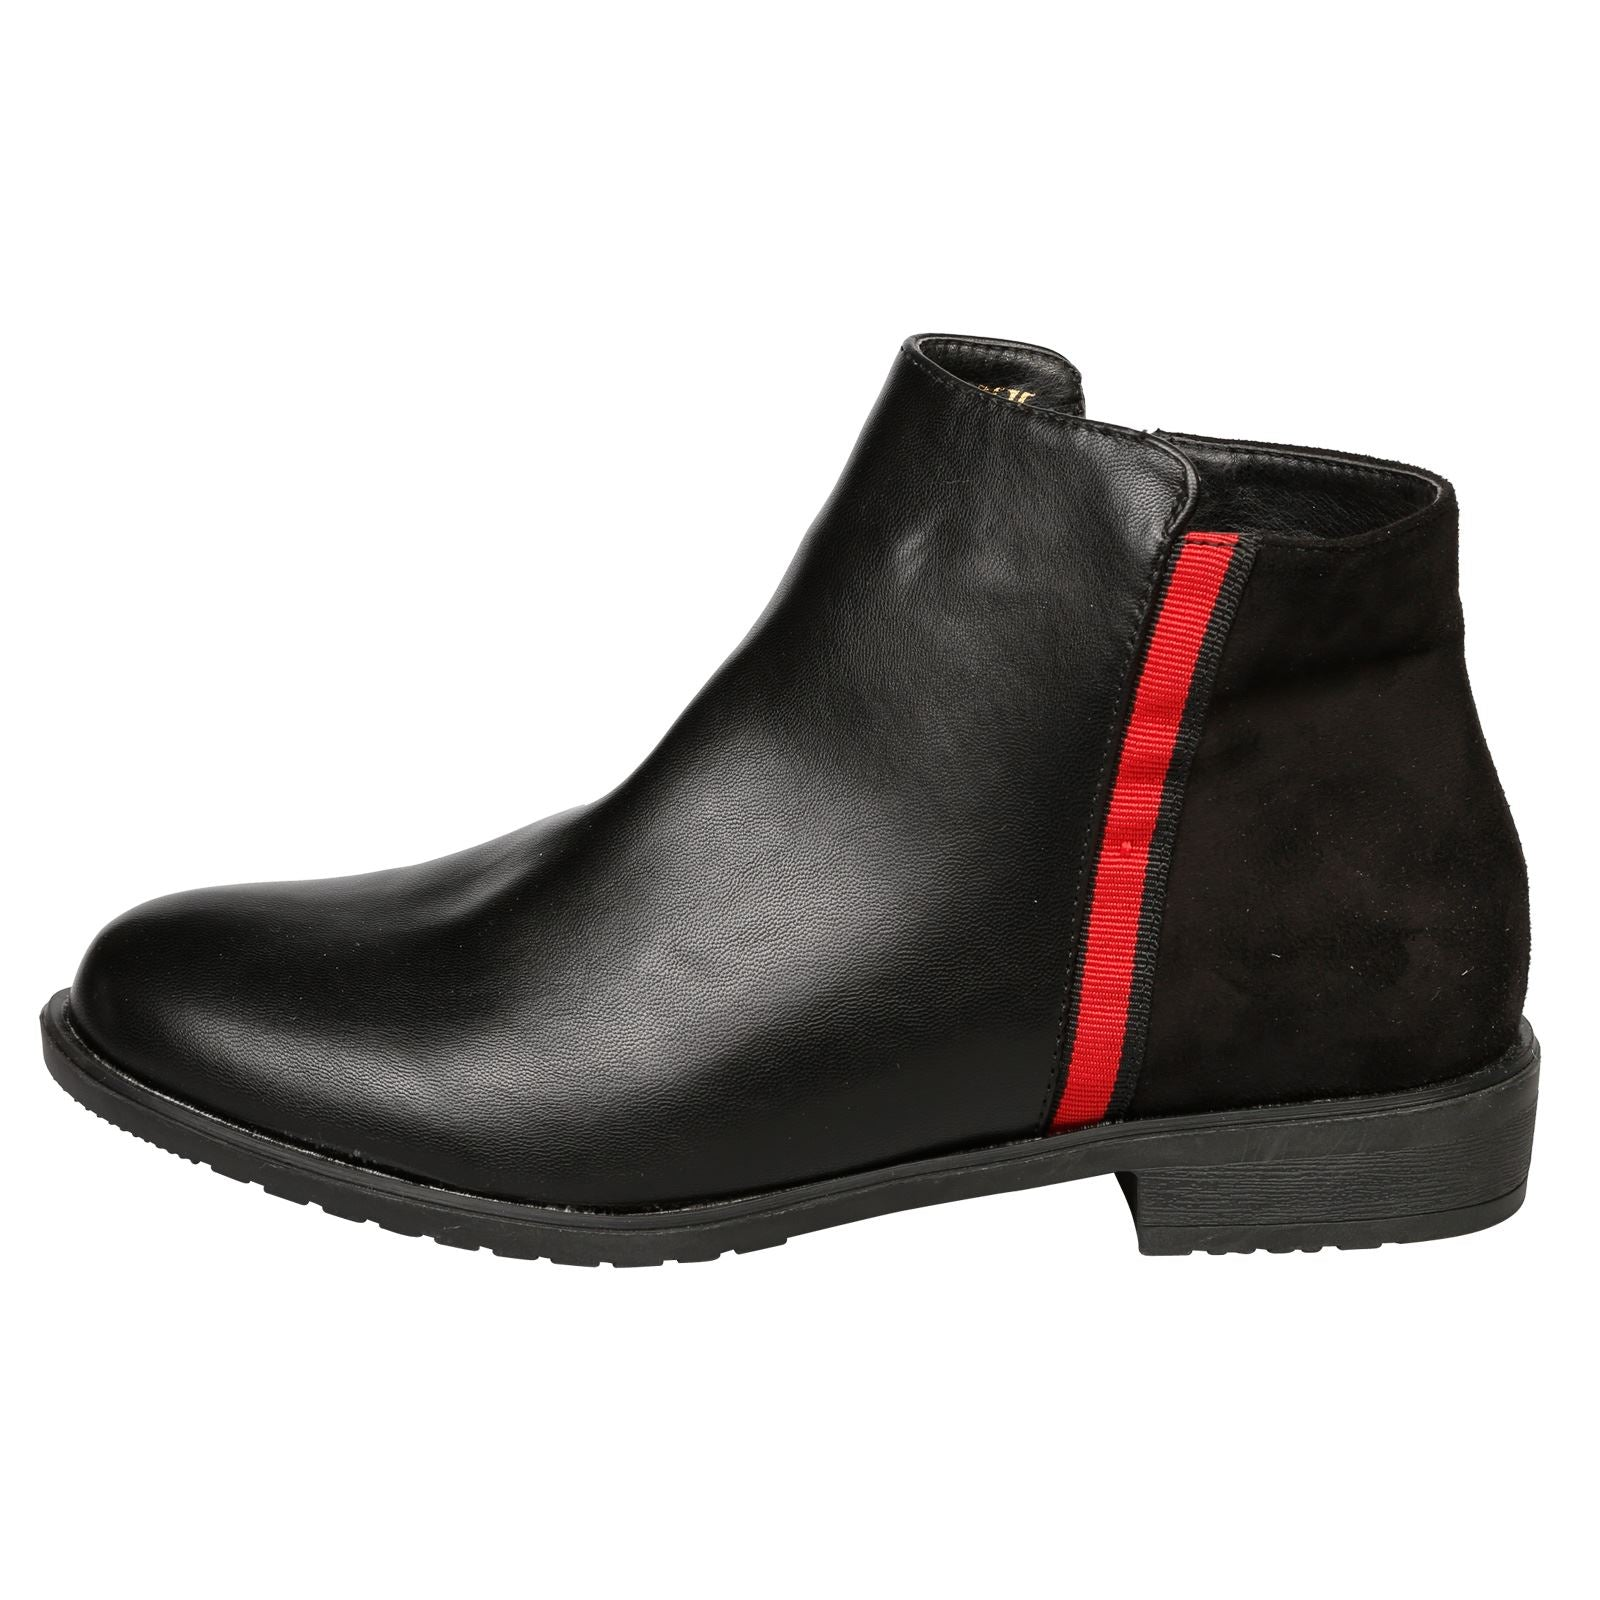 Harleigh Two Tone Ankle Boots in Black - Feet First Fashion